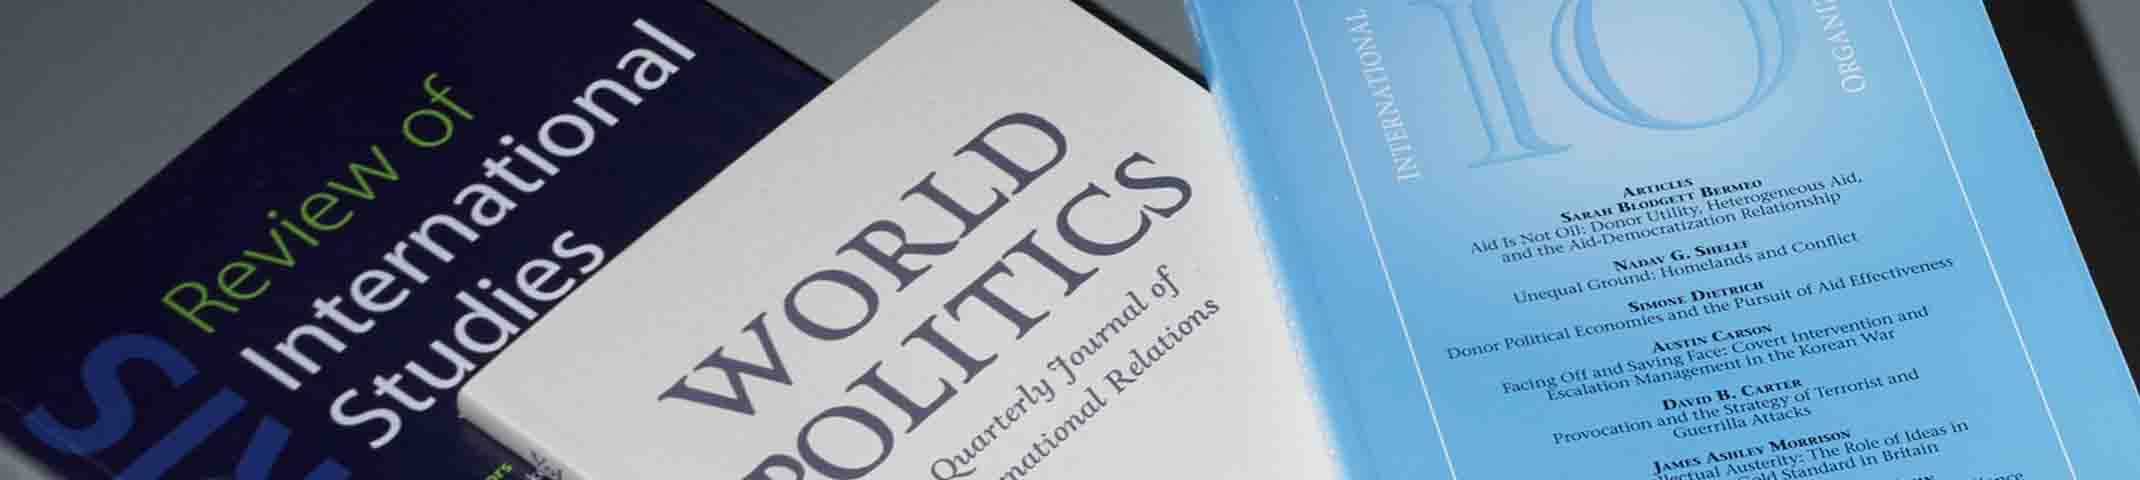 International Relations journals